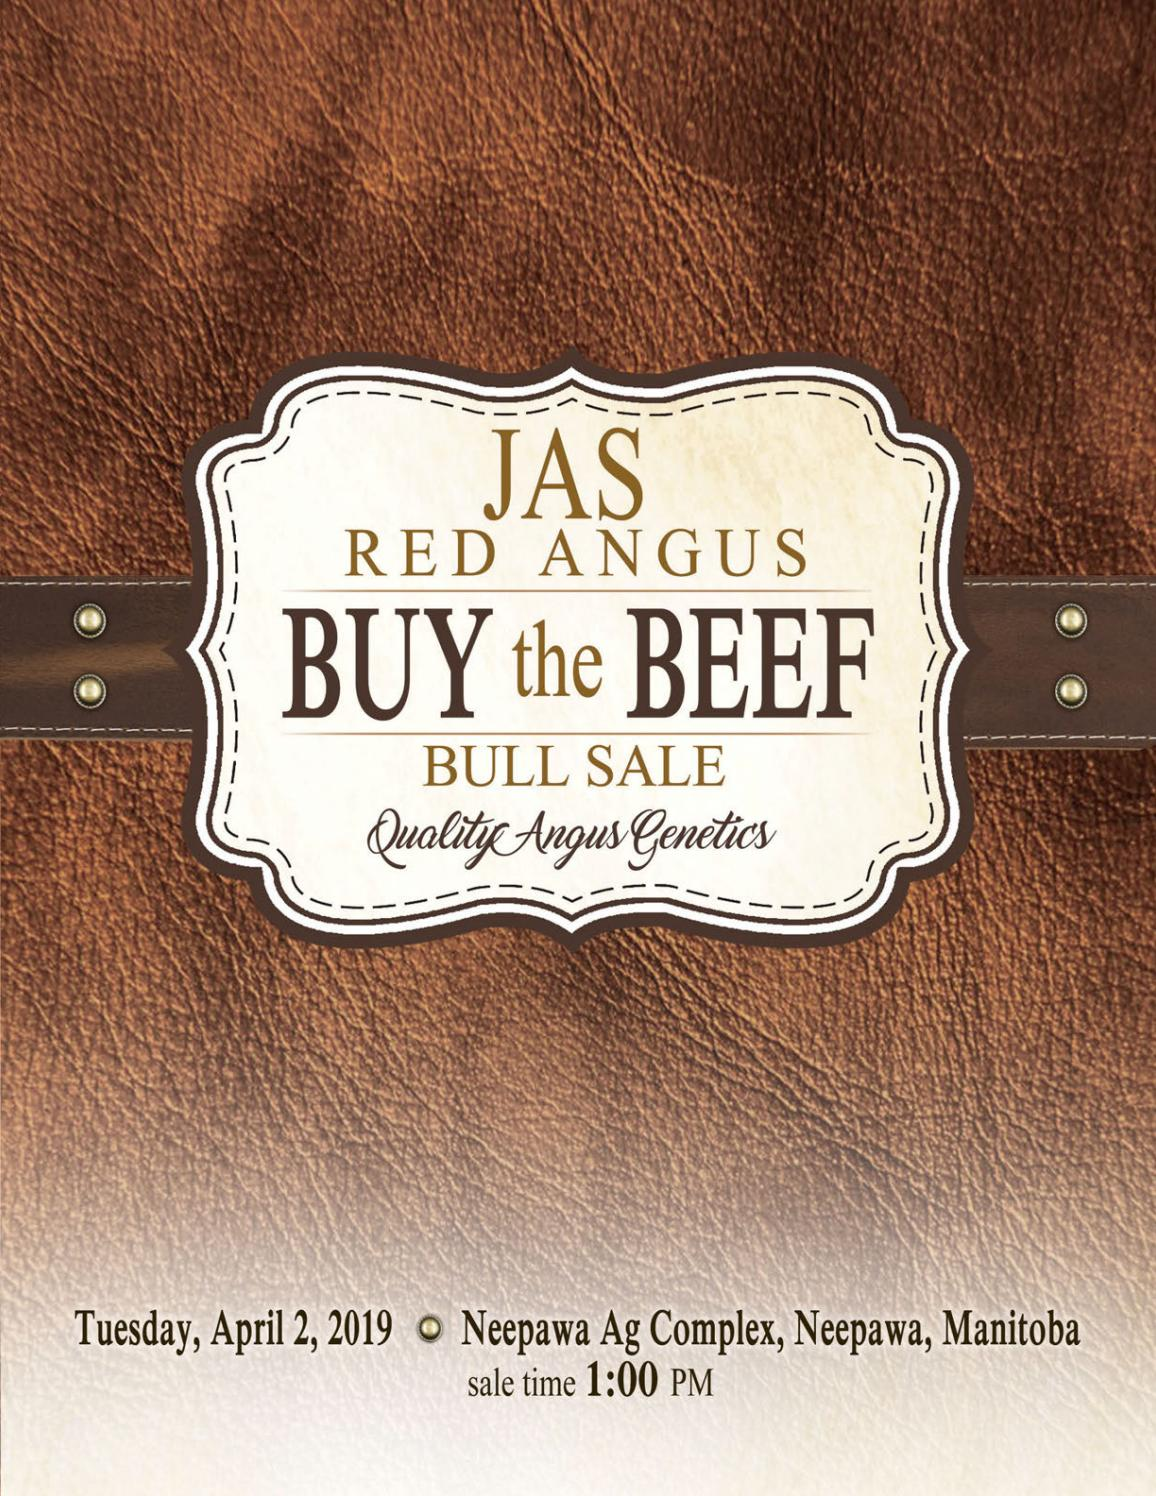 Welp Jas Red Angus Buy the Beef Bull Sale 2019 by Bouchard Livestock LY-11